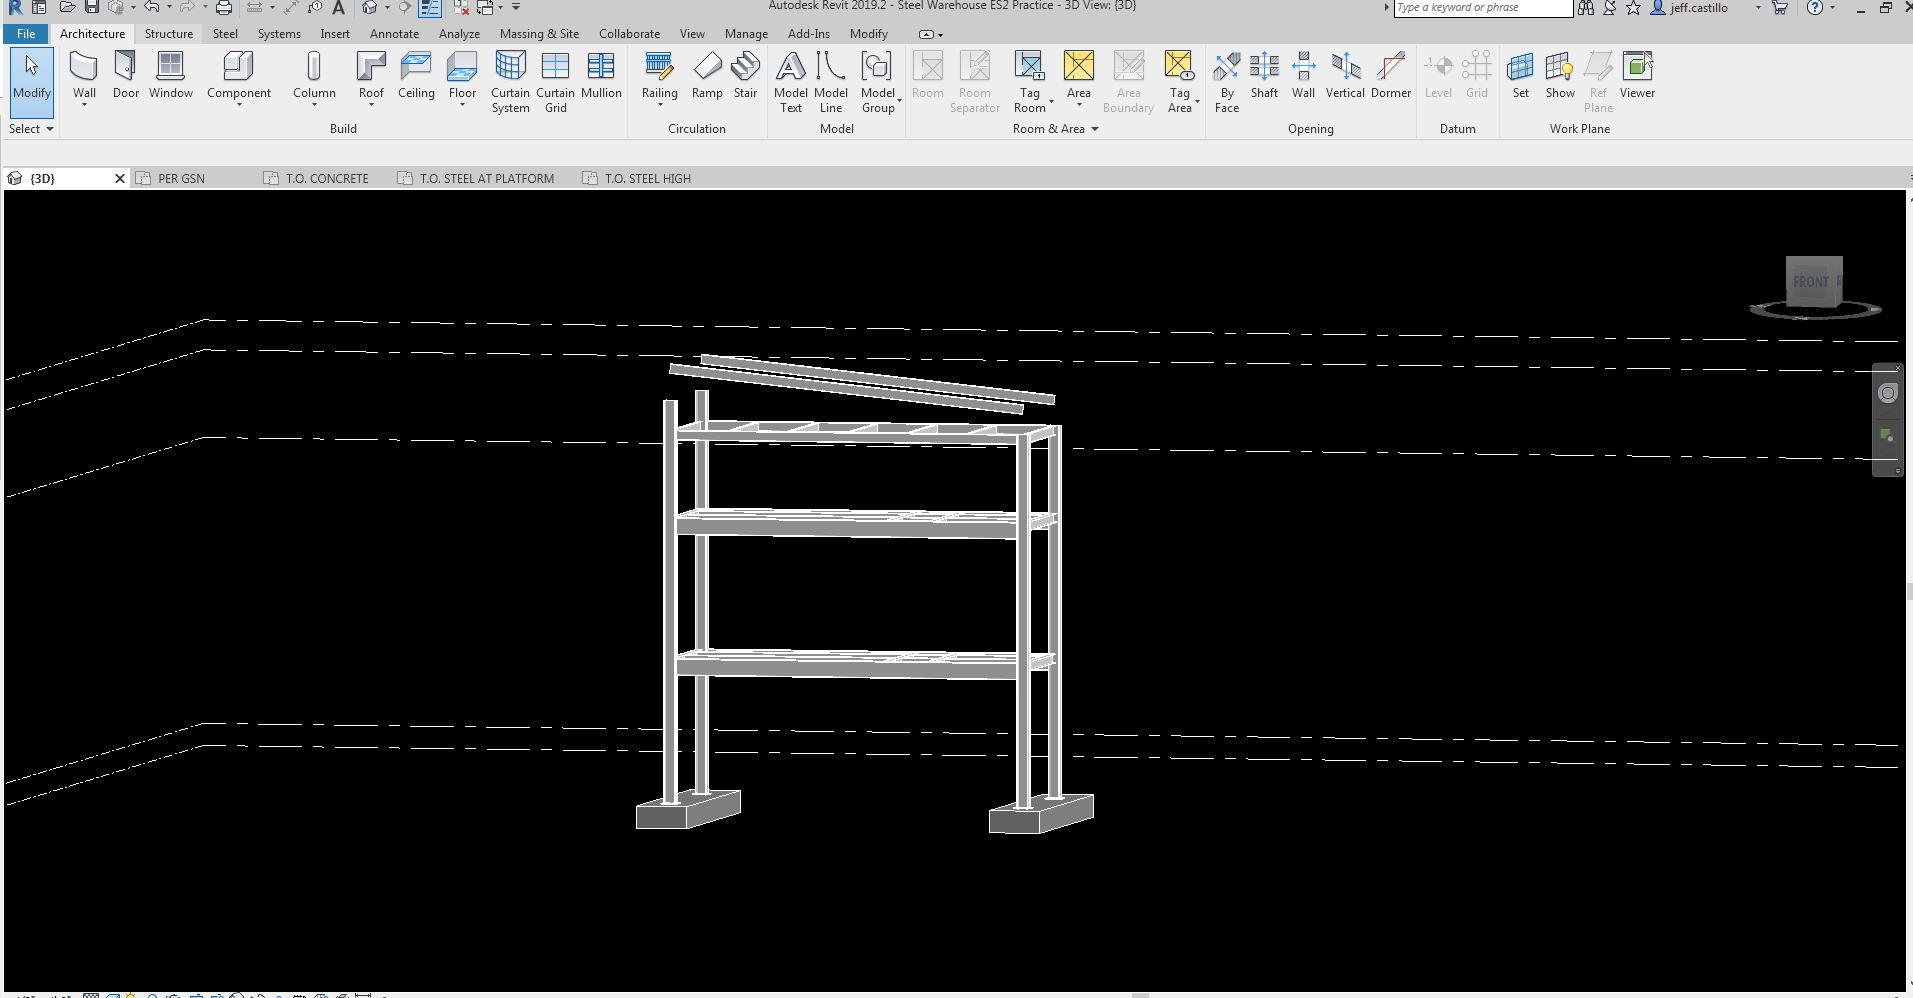 Galvanized Steel Grating & Top Level going passed in constraints